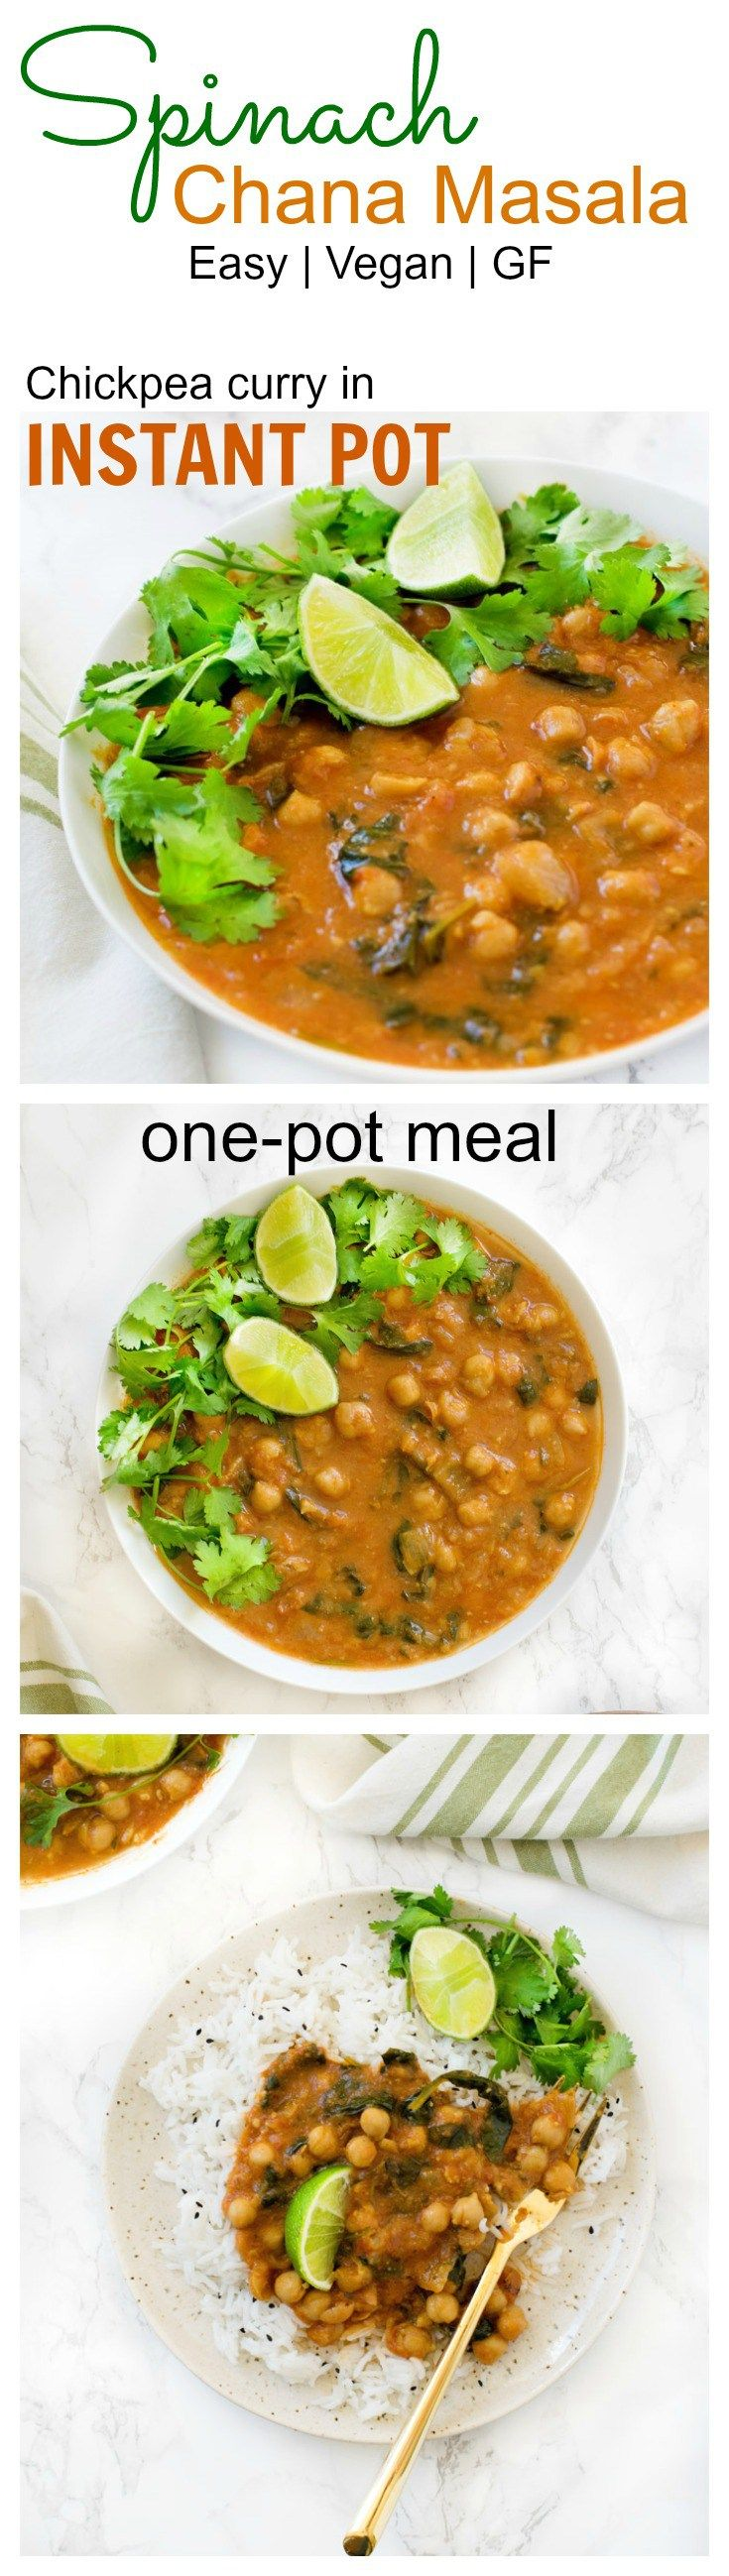 #vegan #glutenfree Chickpea curry / Spinach Chana Masala in a pressure cooker #instantpot from scratch. Ready in minutes without baby sitting the curry.